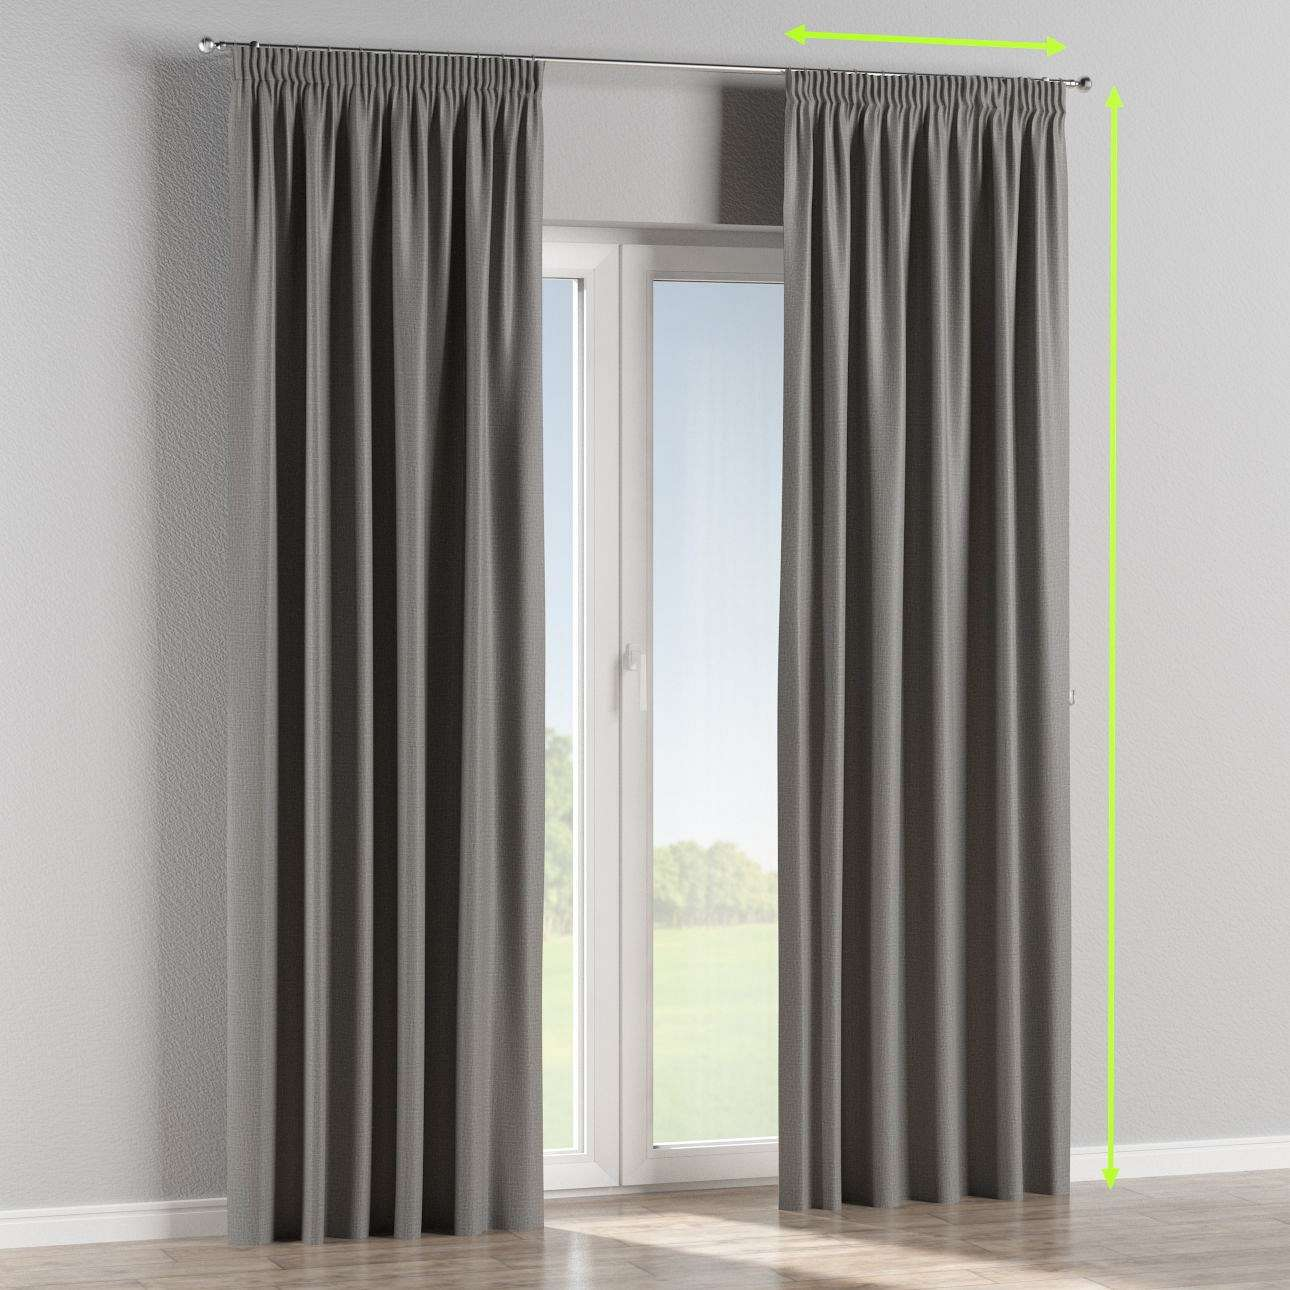 Pencil pleat curtain in collection Blackout, fabric: 269-63